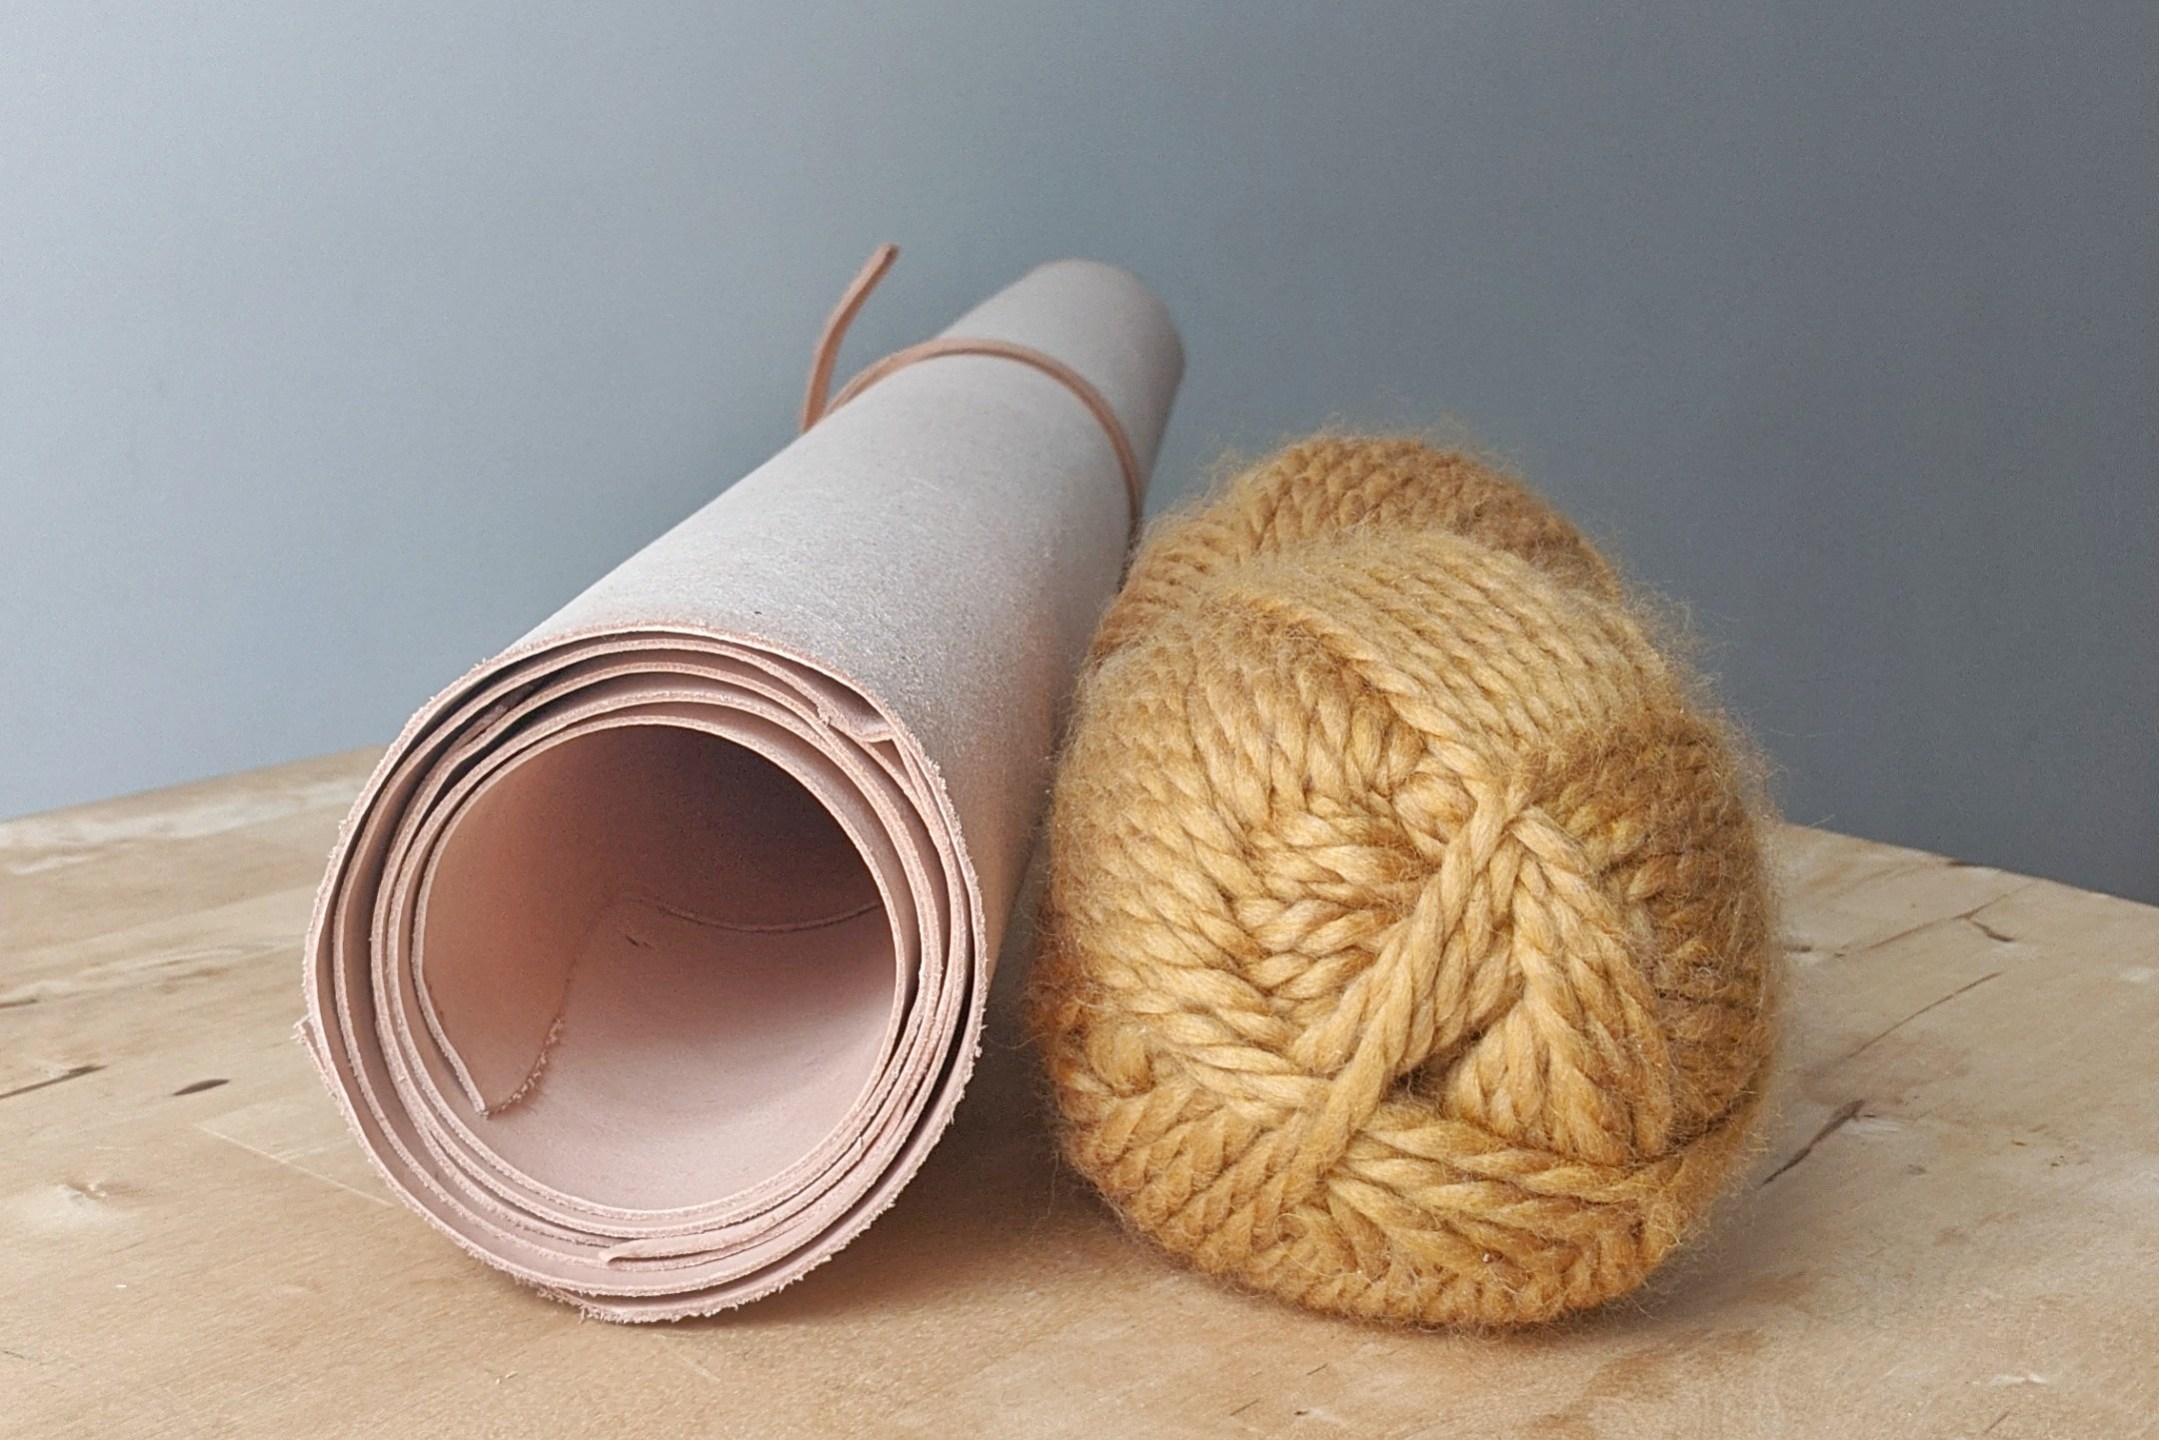 Yarn and vevg tan leather